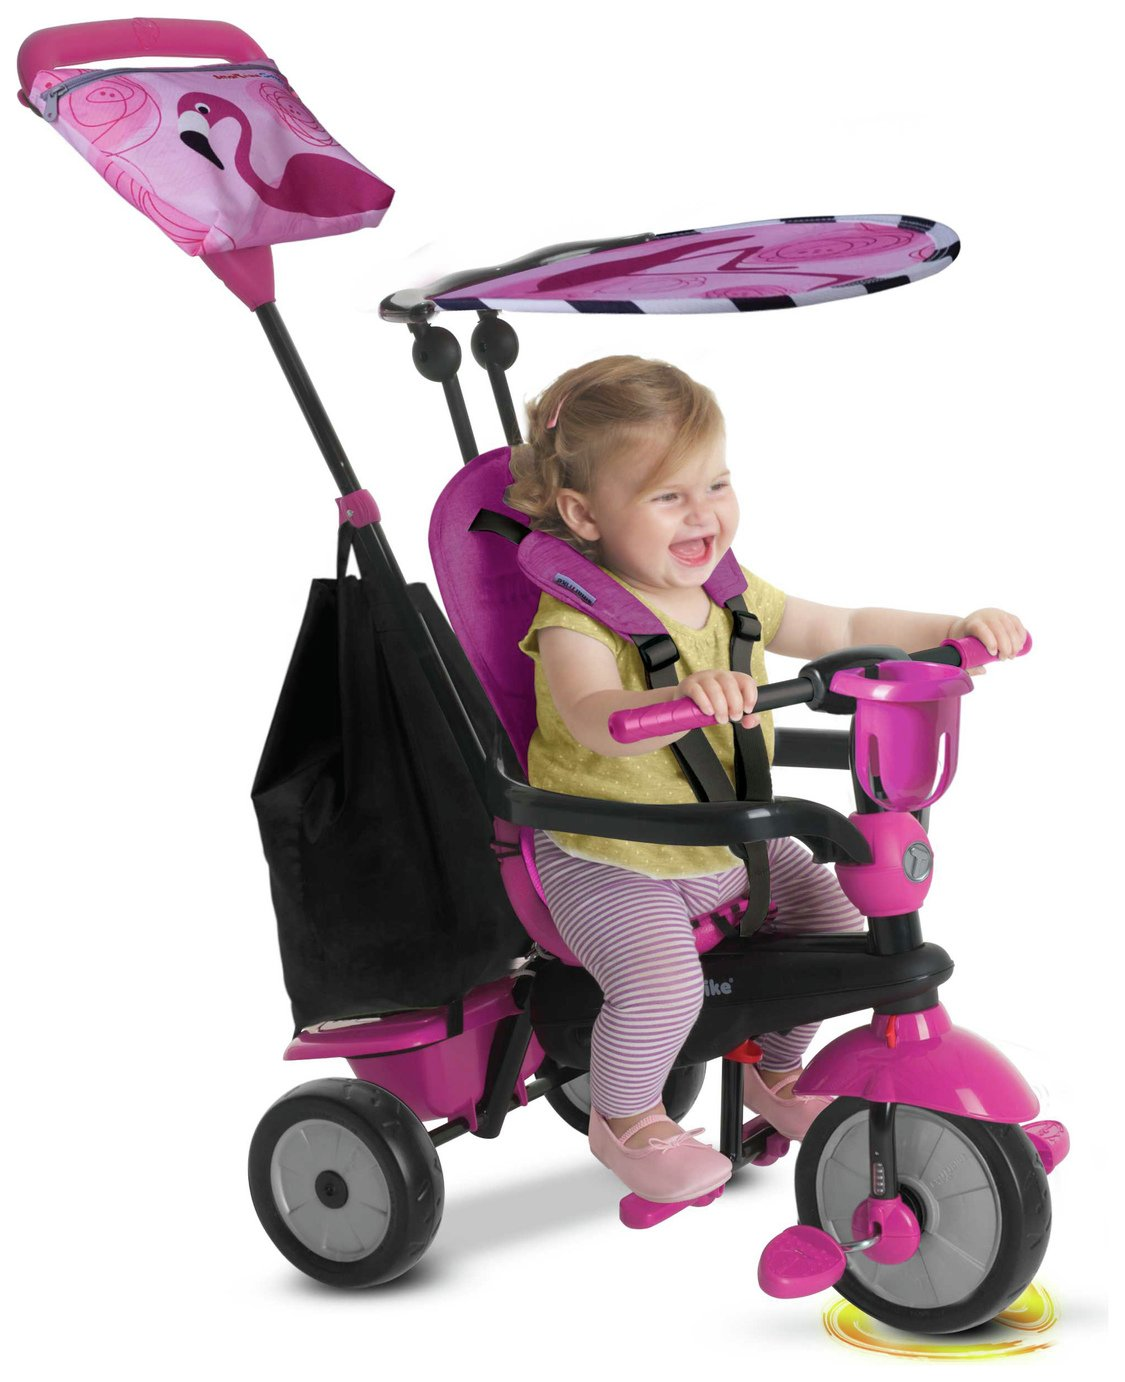 'Smart Trike - Touch Steering 4-in-1 Safari Ride On - Flamingo